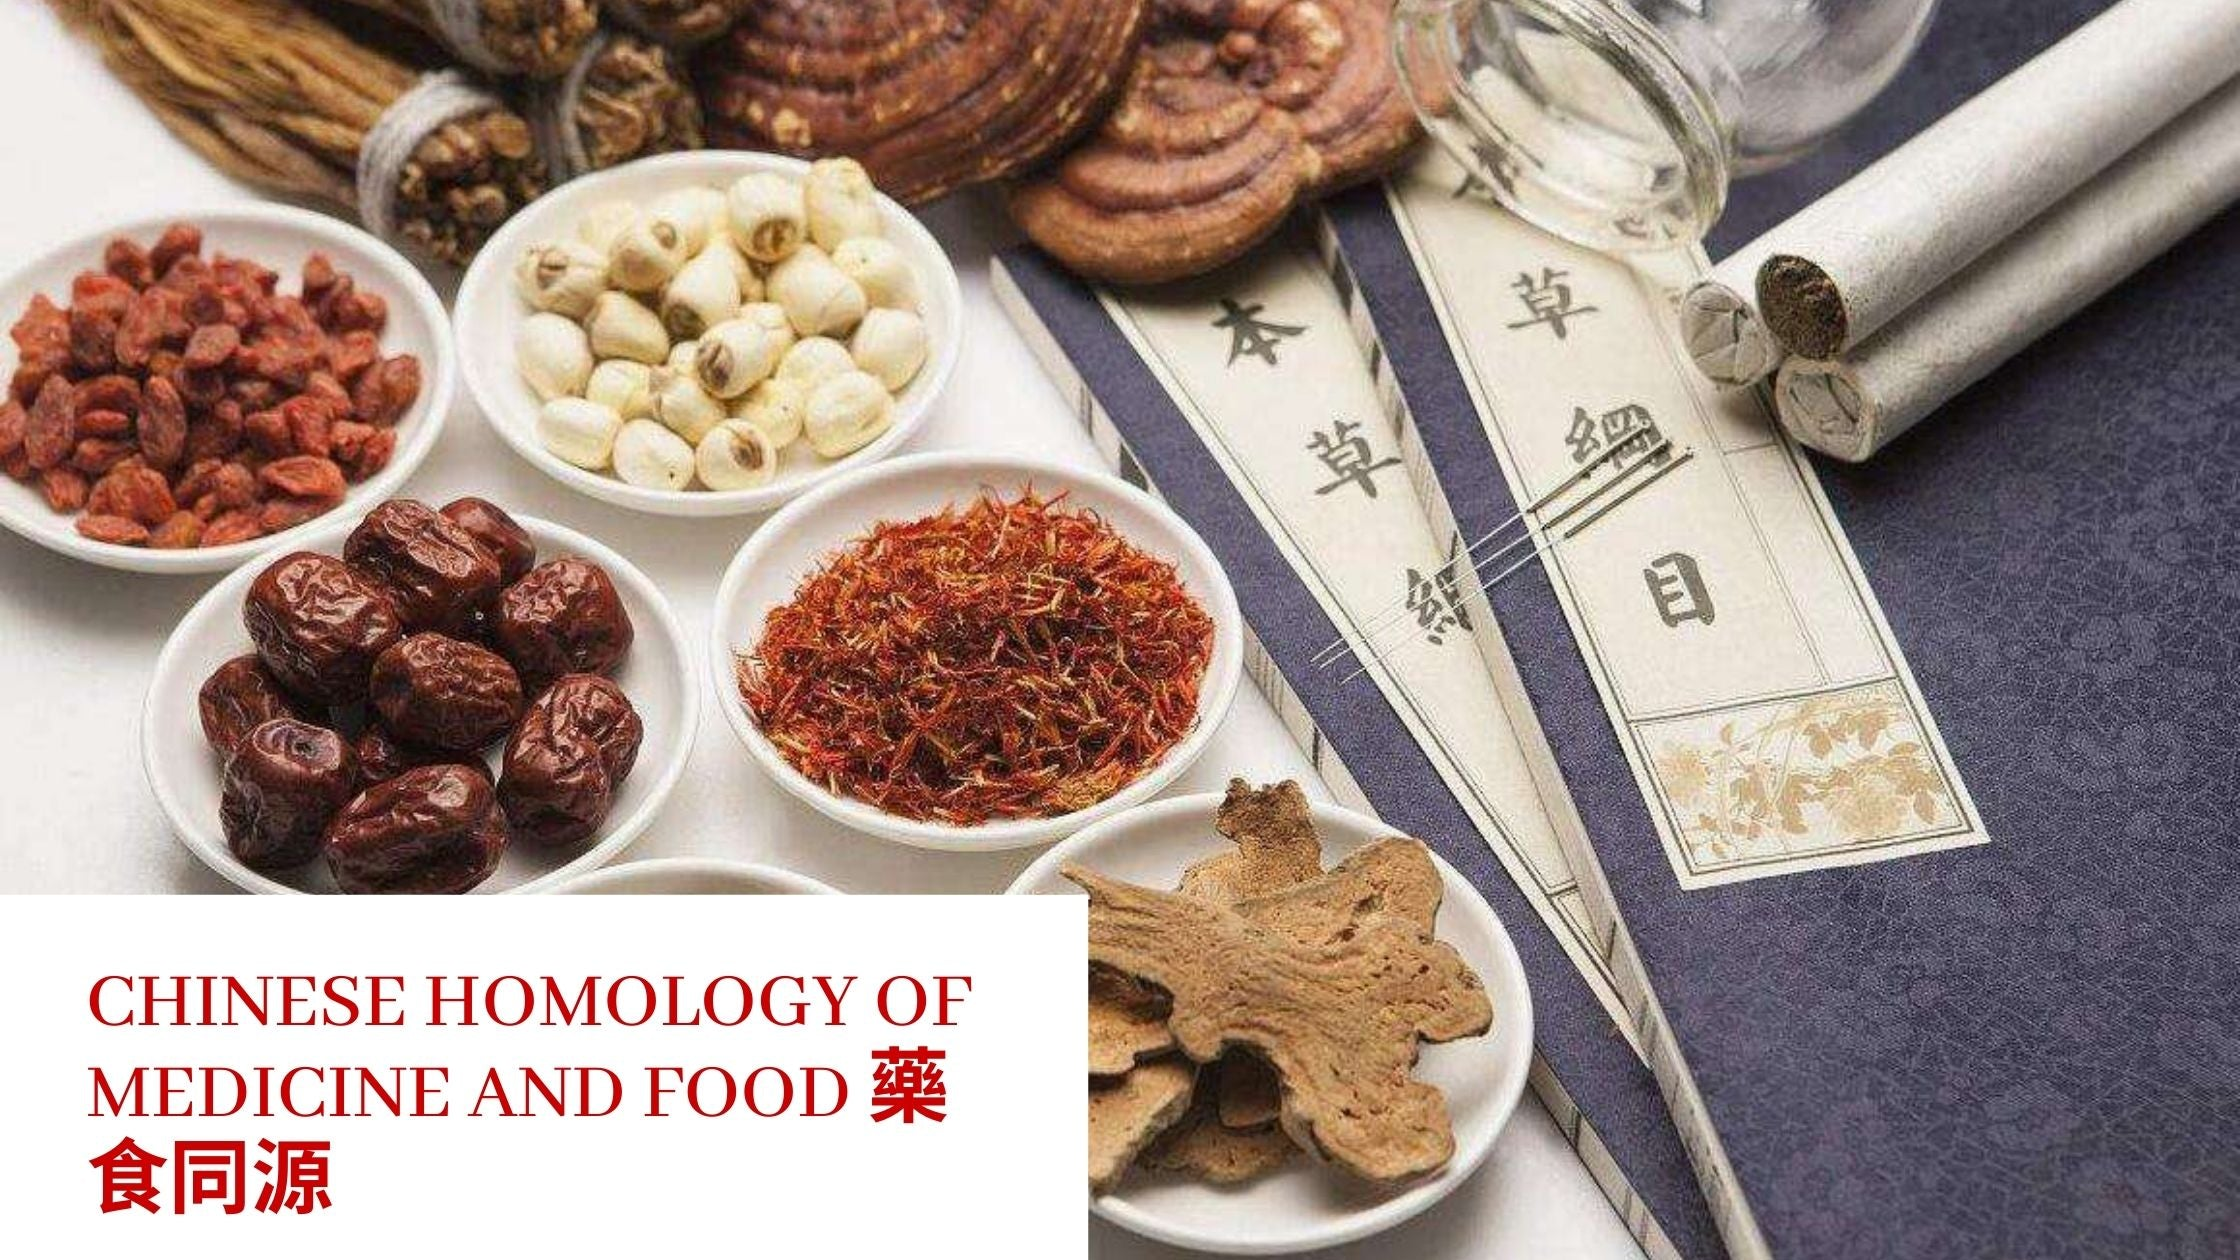 A List Of Chinese Homology Of Medicine And Food 藥食同源目录